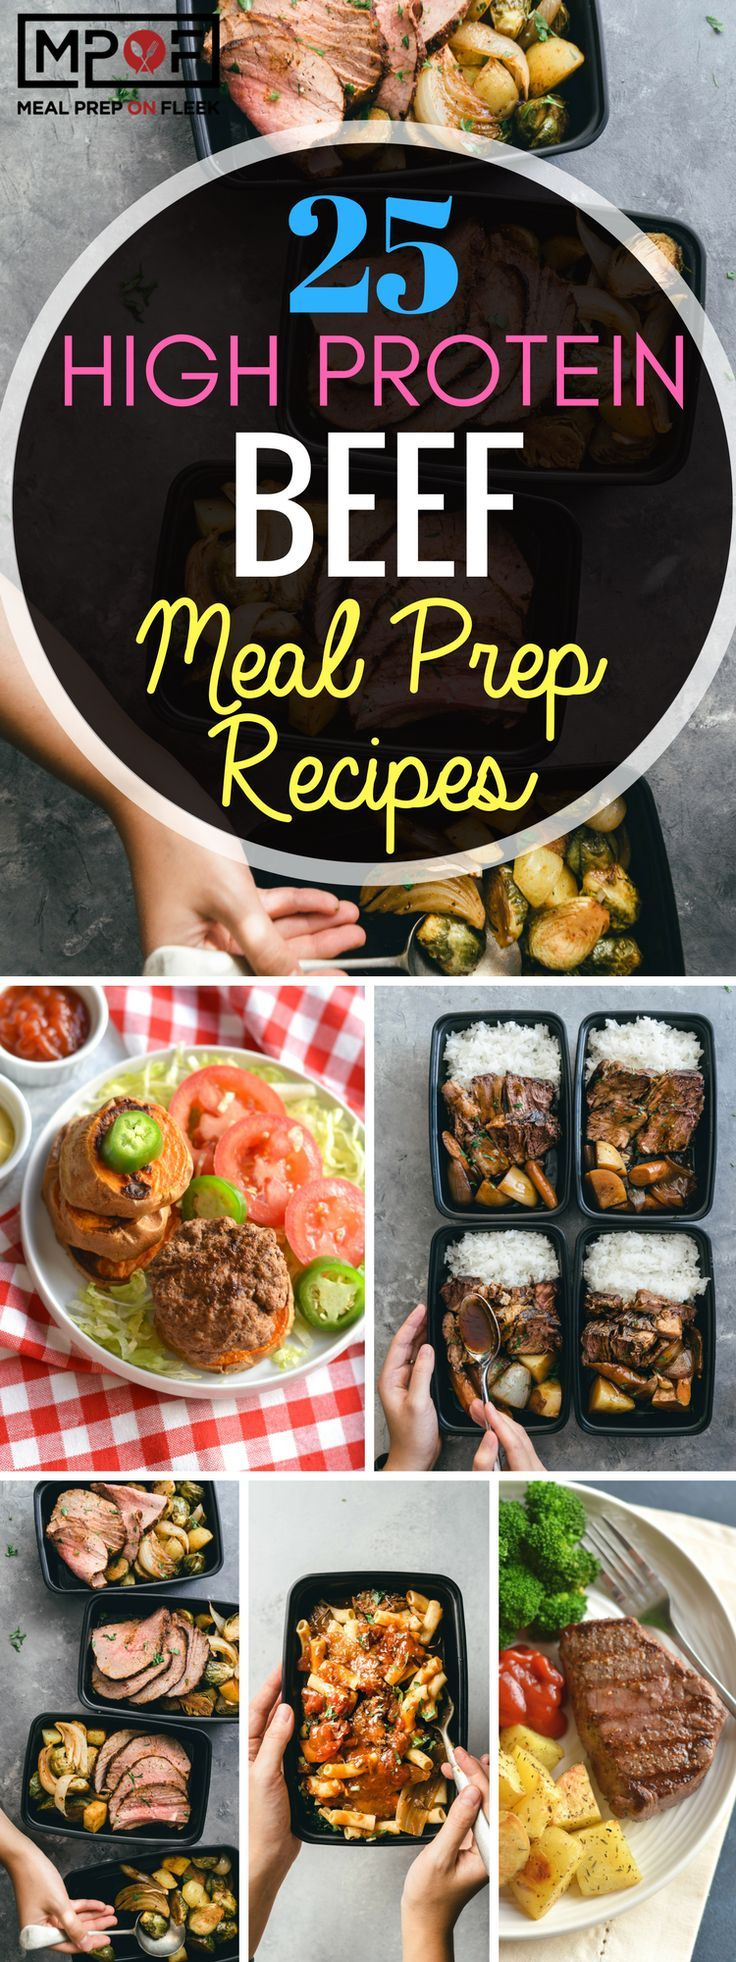 25 High Protein Beef Meal Prep Recipes Meal Prep On Fleek High Protein Meal Prep High Protein Recipes High Calorie Meals